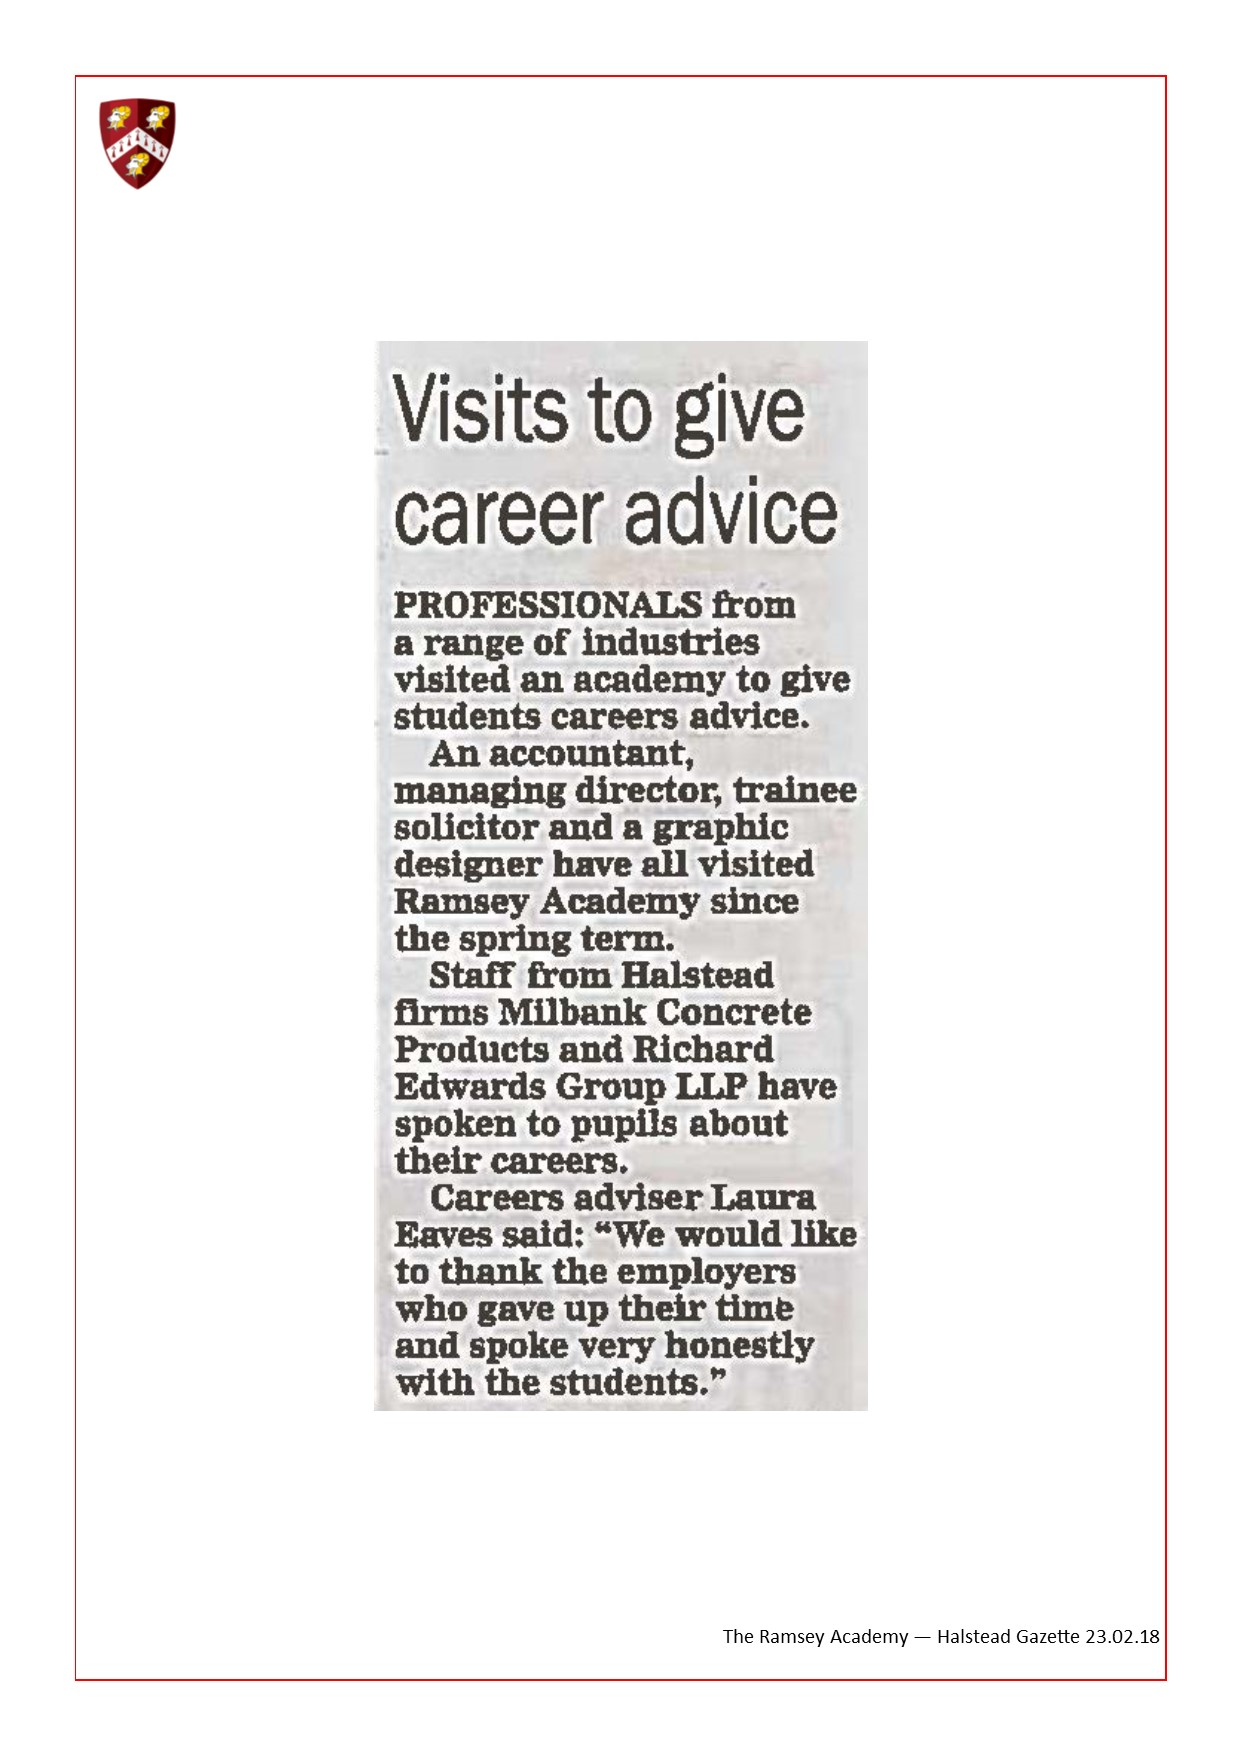 Visits To Give Career Advise